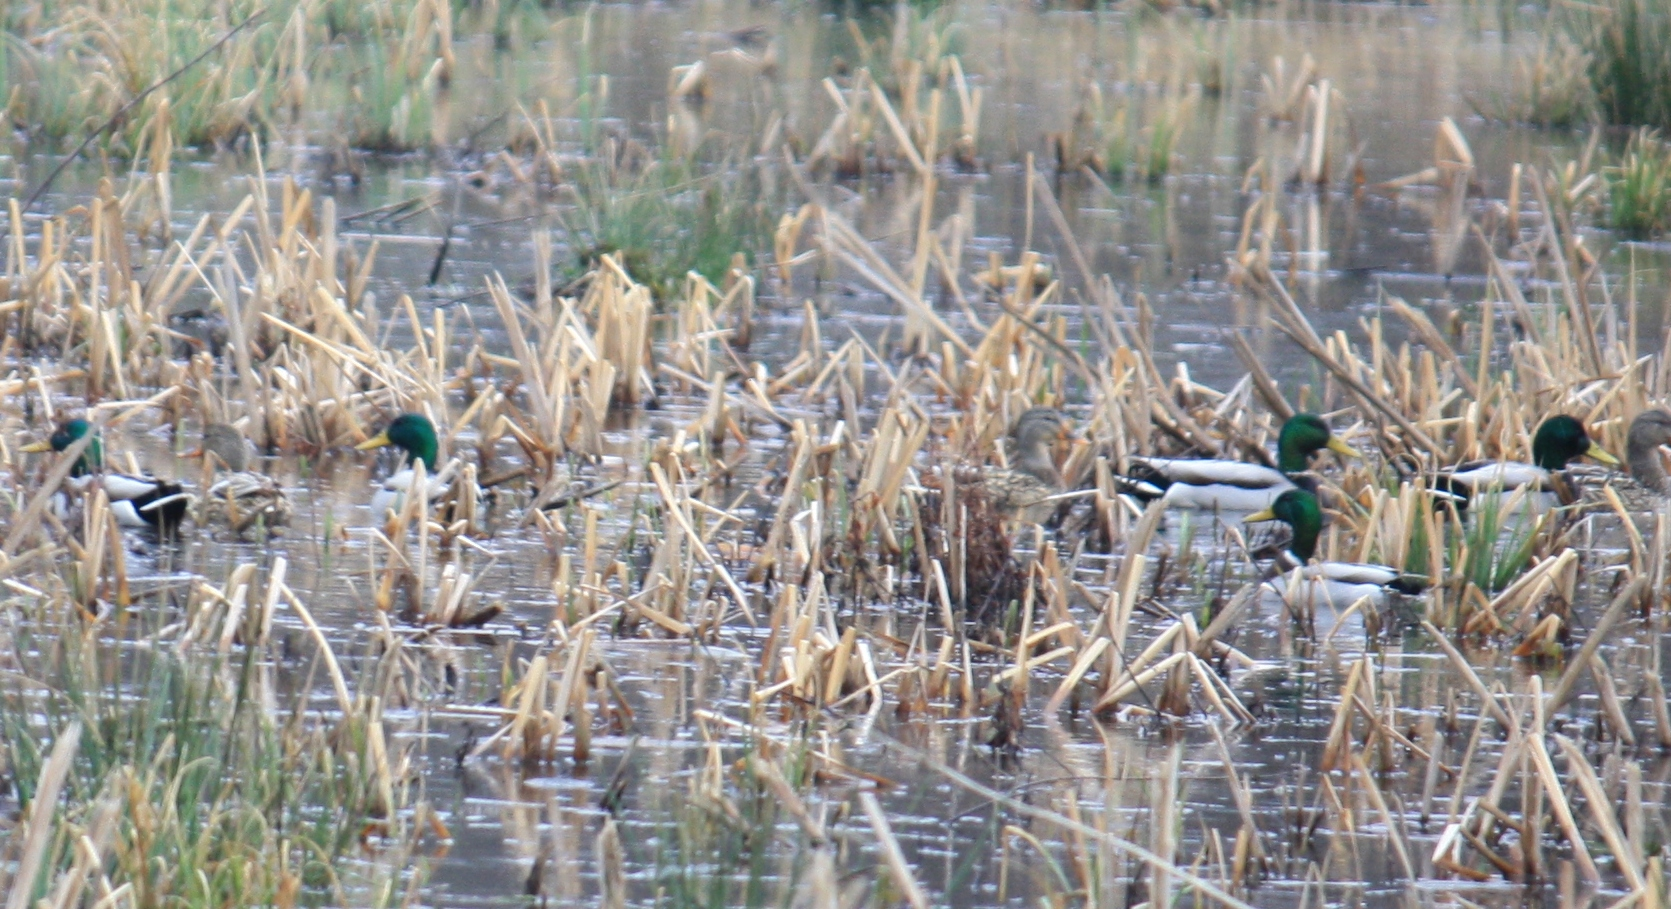 Pintail and Mallard ducks in brown and green foliage.